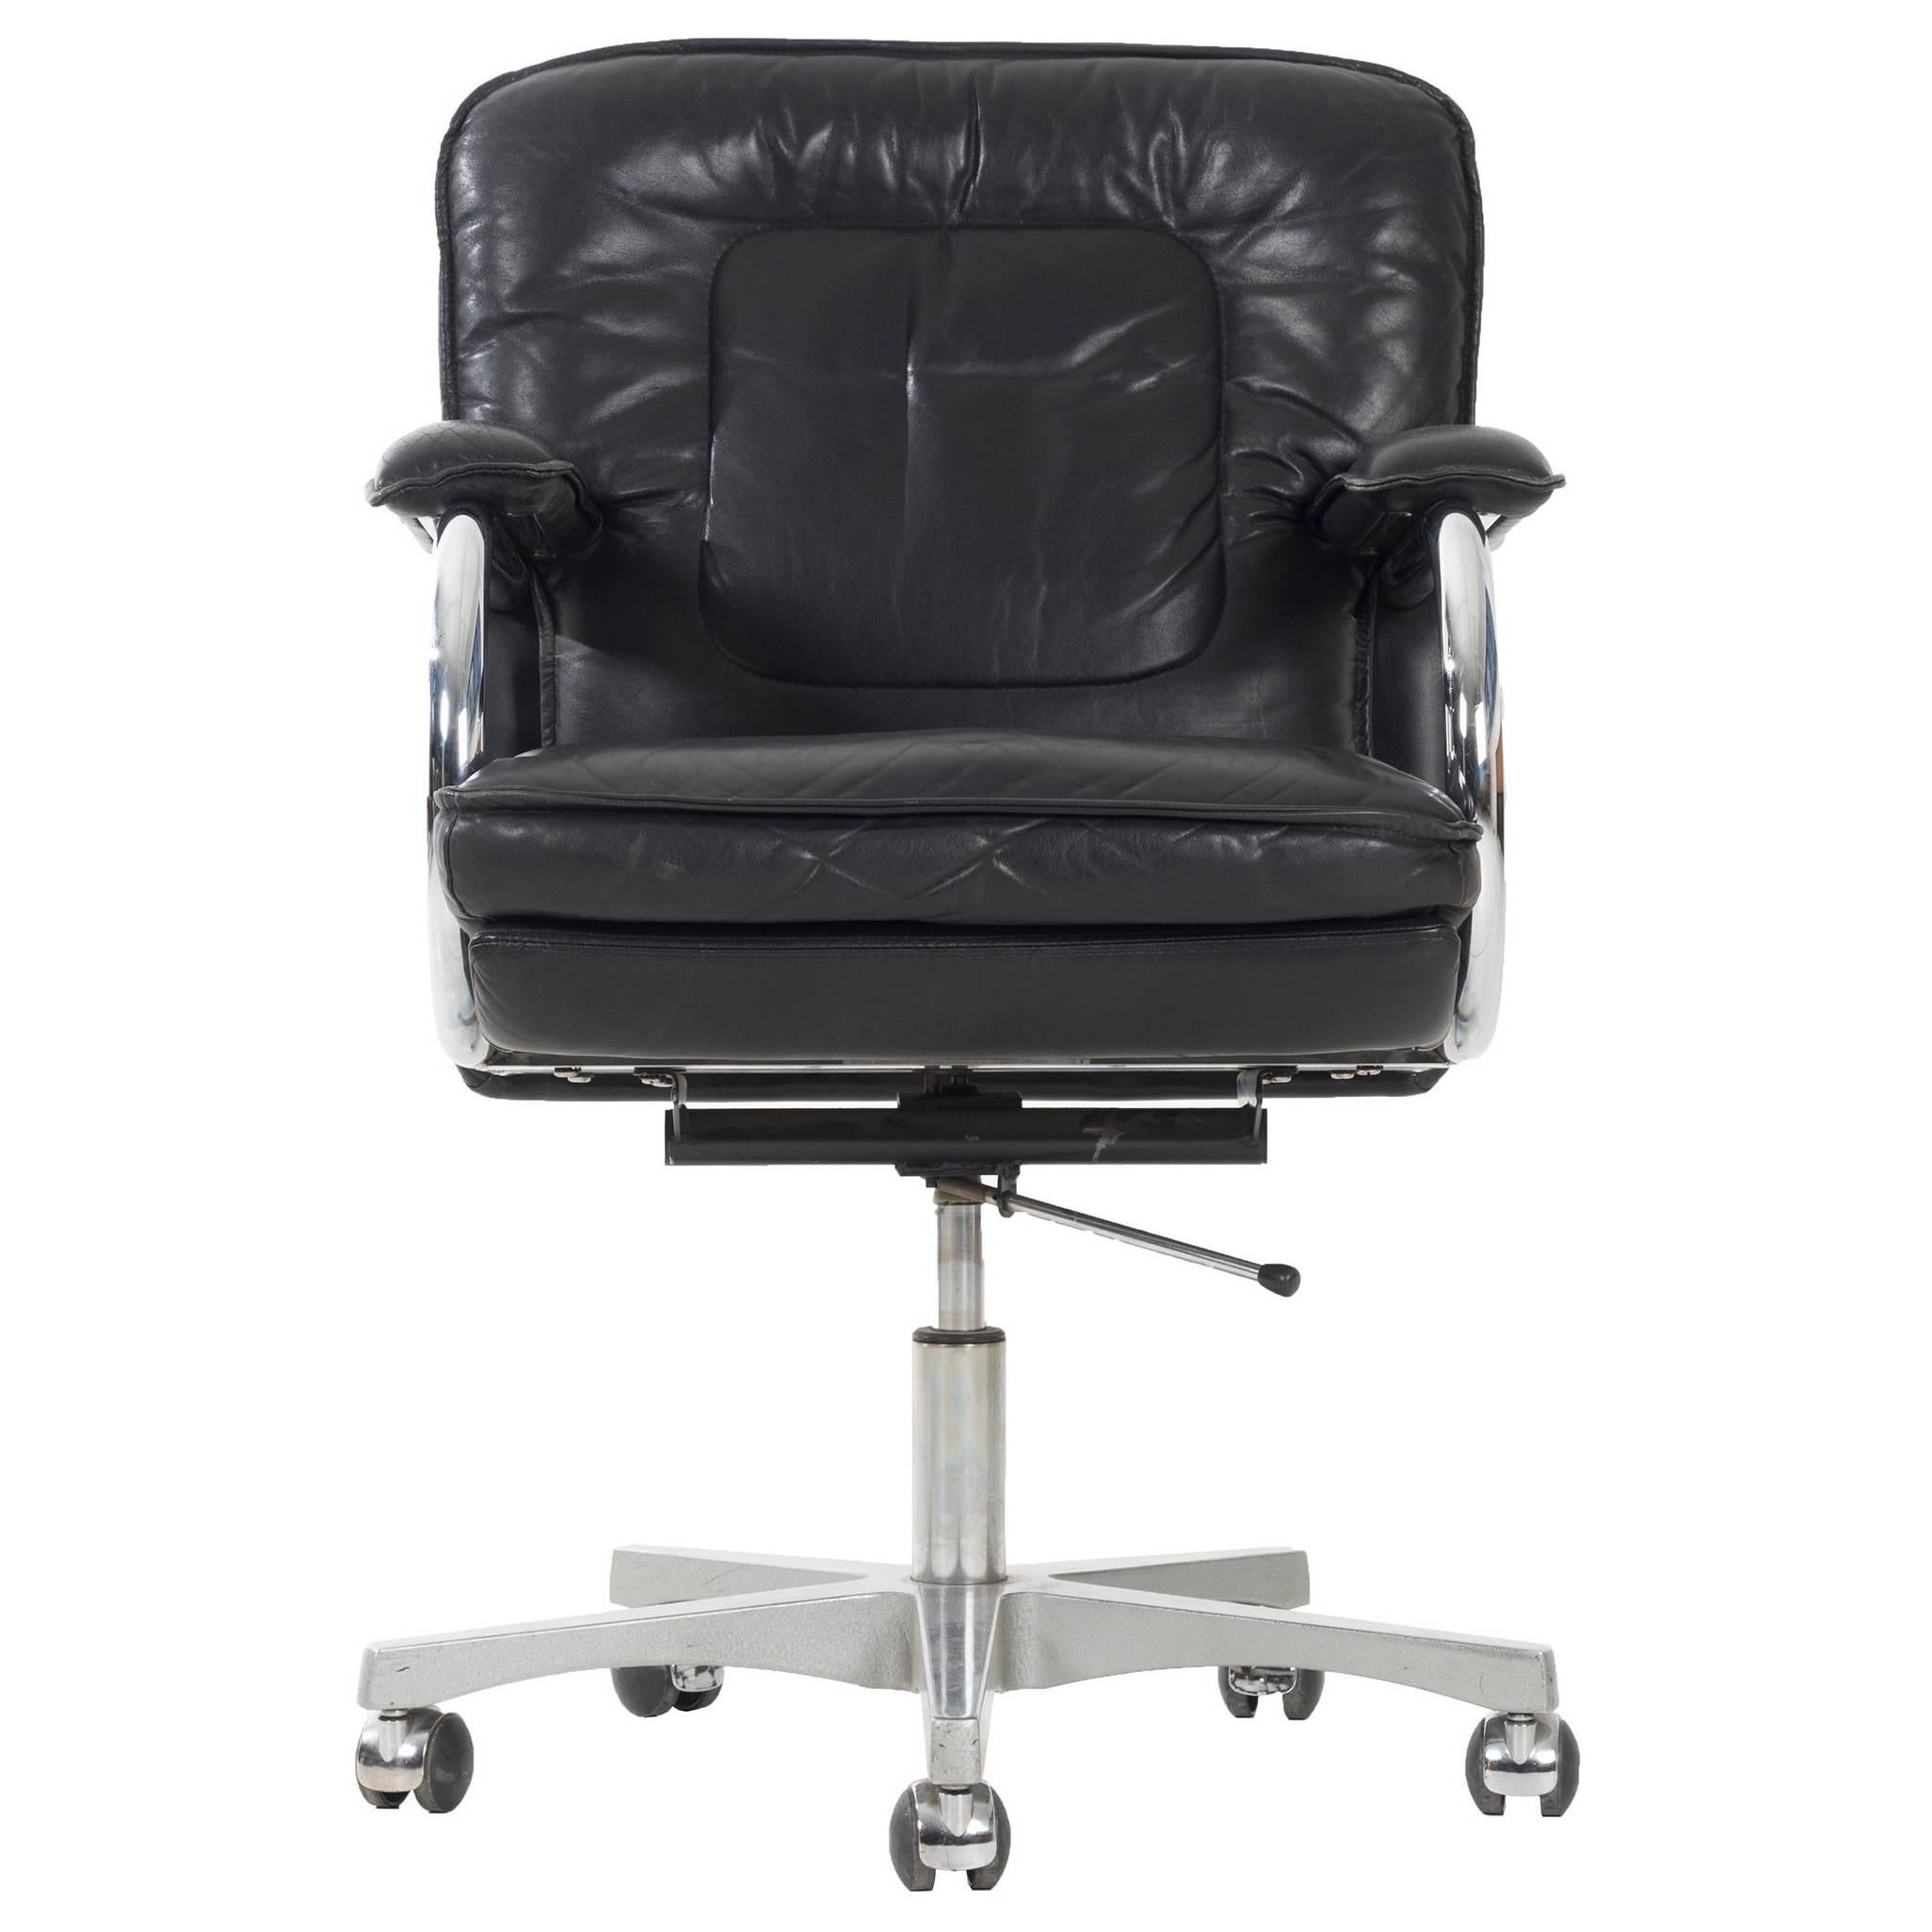 Frank Mariani Leather Desk Chair